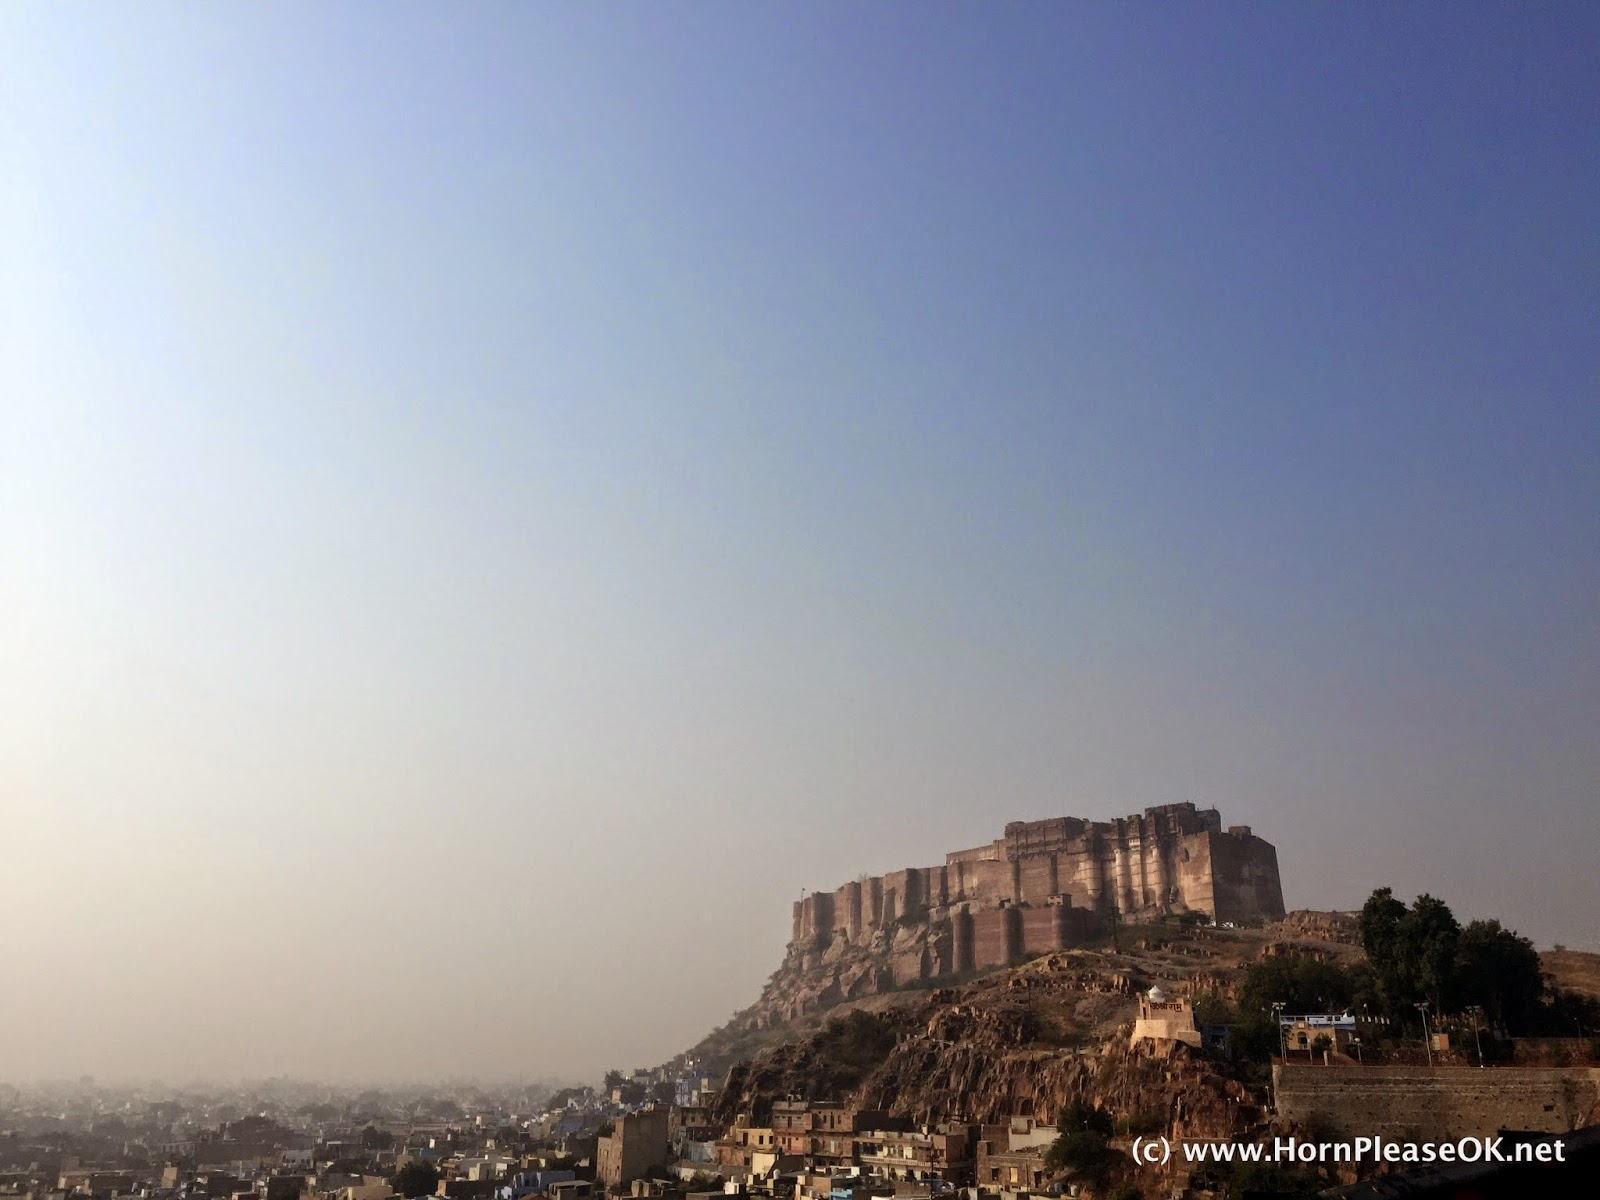 The imperious Mehrangarh fort stands on a block of volcanic rock